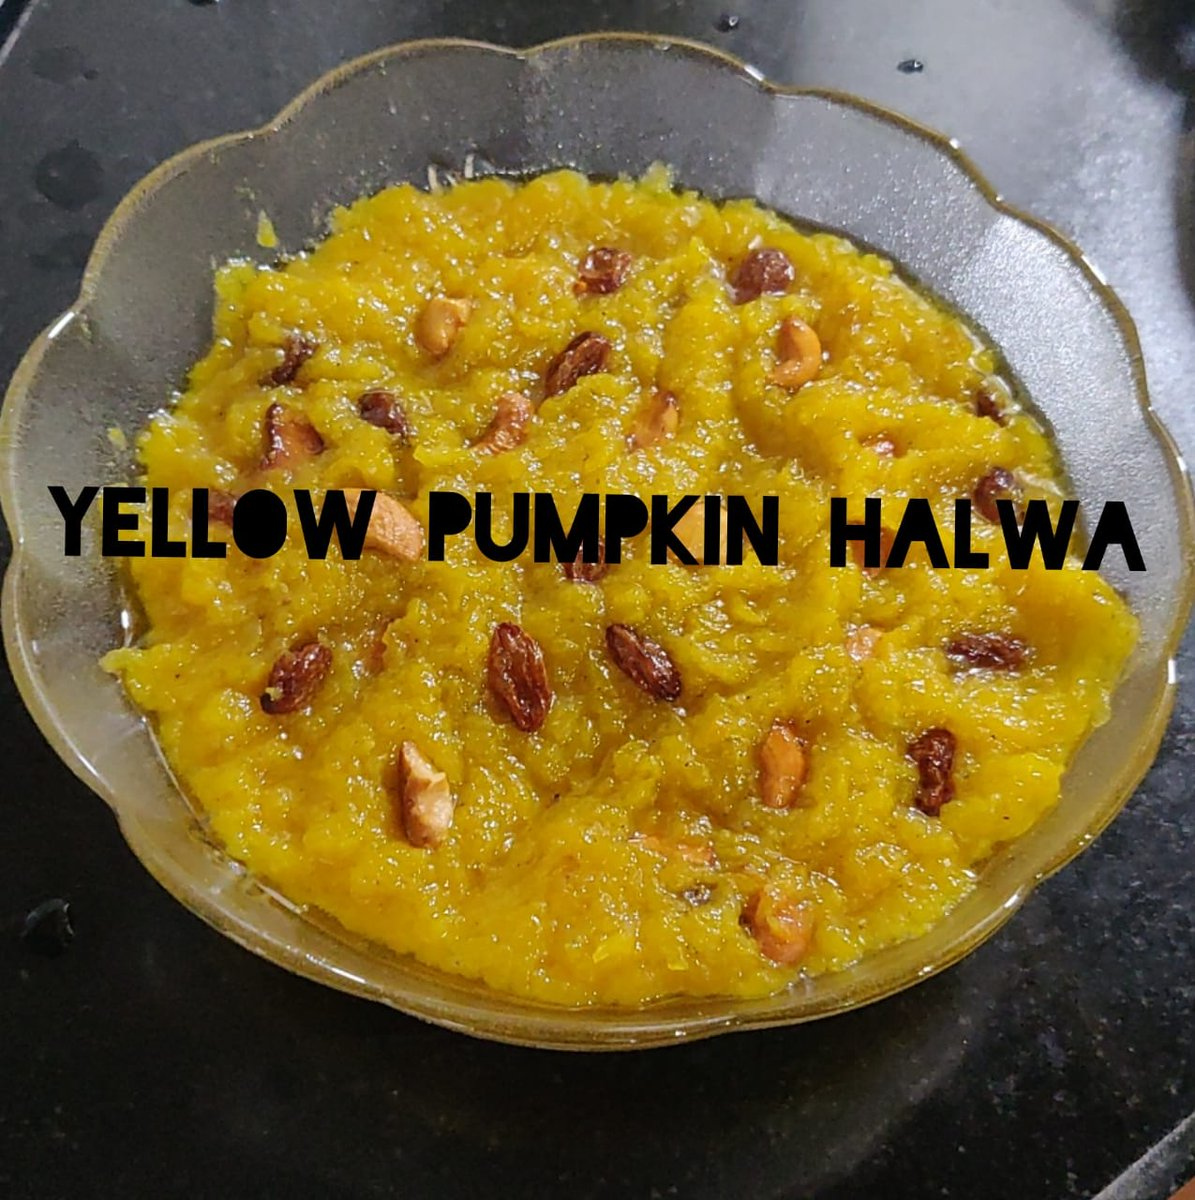 Yellow Pumpkin/Parangi Kai/Kaddoo  Halwa 💛  The preparation along with its detailed description is available in our YouTube channel. Link in Bio ❤ #cooking #yellowpumpkinhalwa #yummy #parangikaihalwa #kaddoohalwa #recipes #food #foodporn #foodislove #foodie #foodgasm https://t.co/kdlnVzpMq0